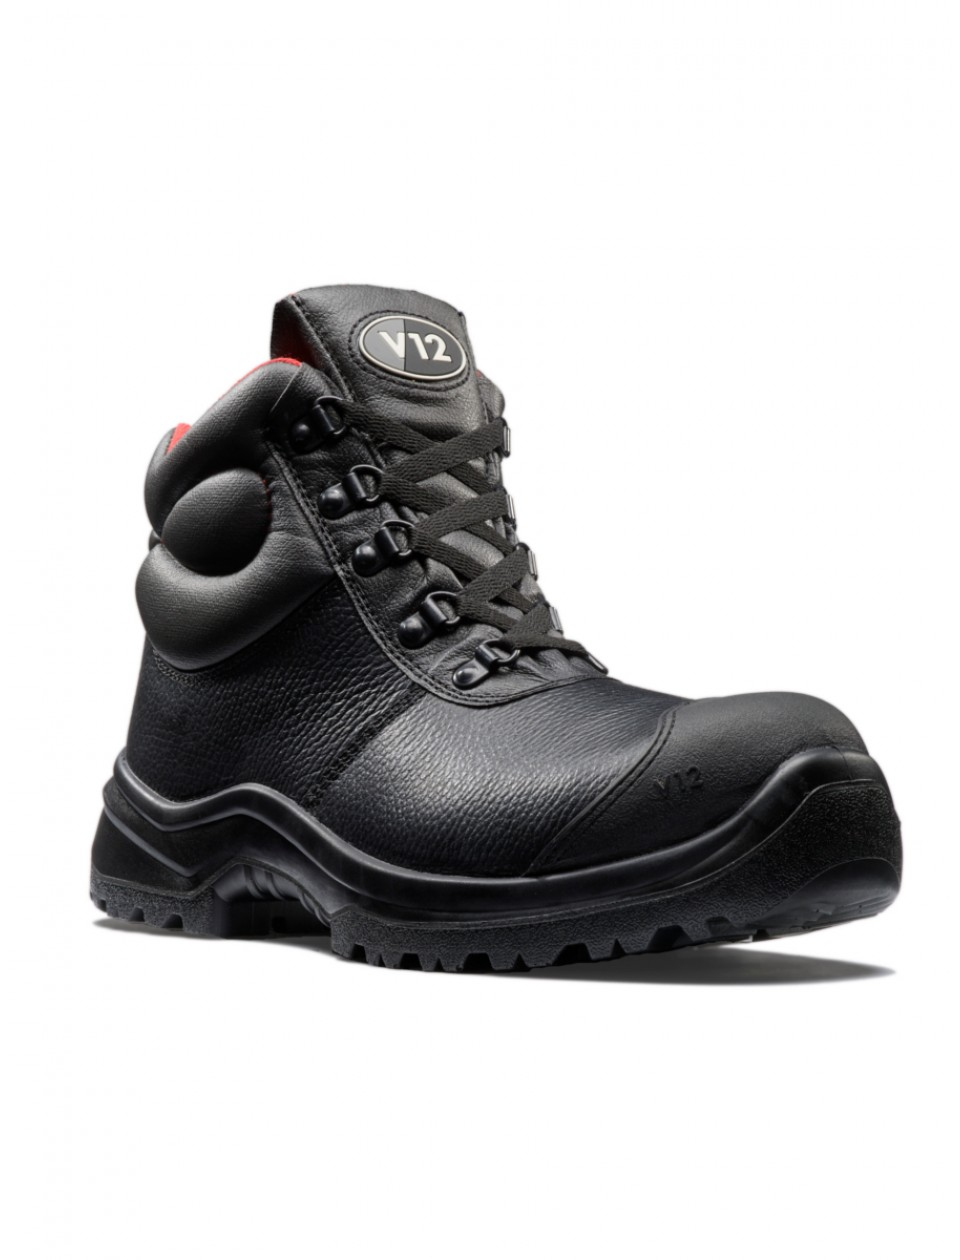 ffd9b6f6395 V12 Rhino V6863.01 Leather Safety Boots